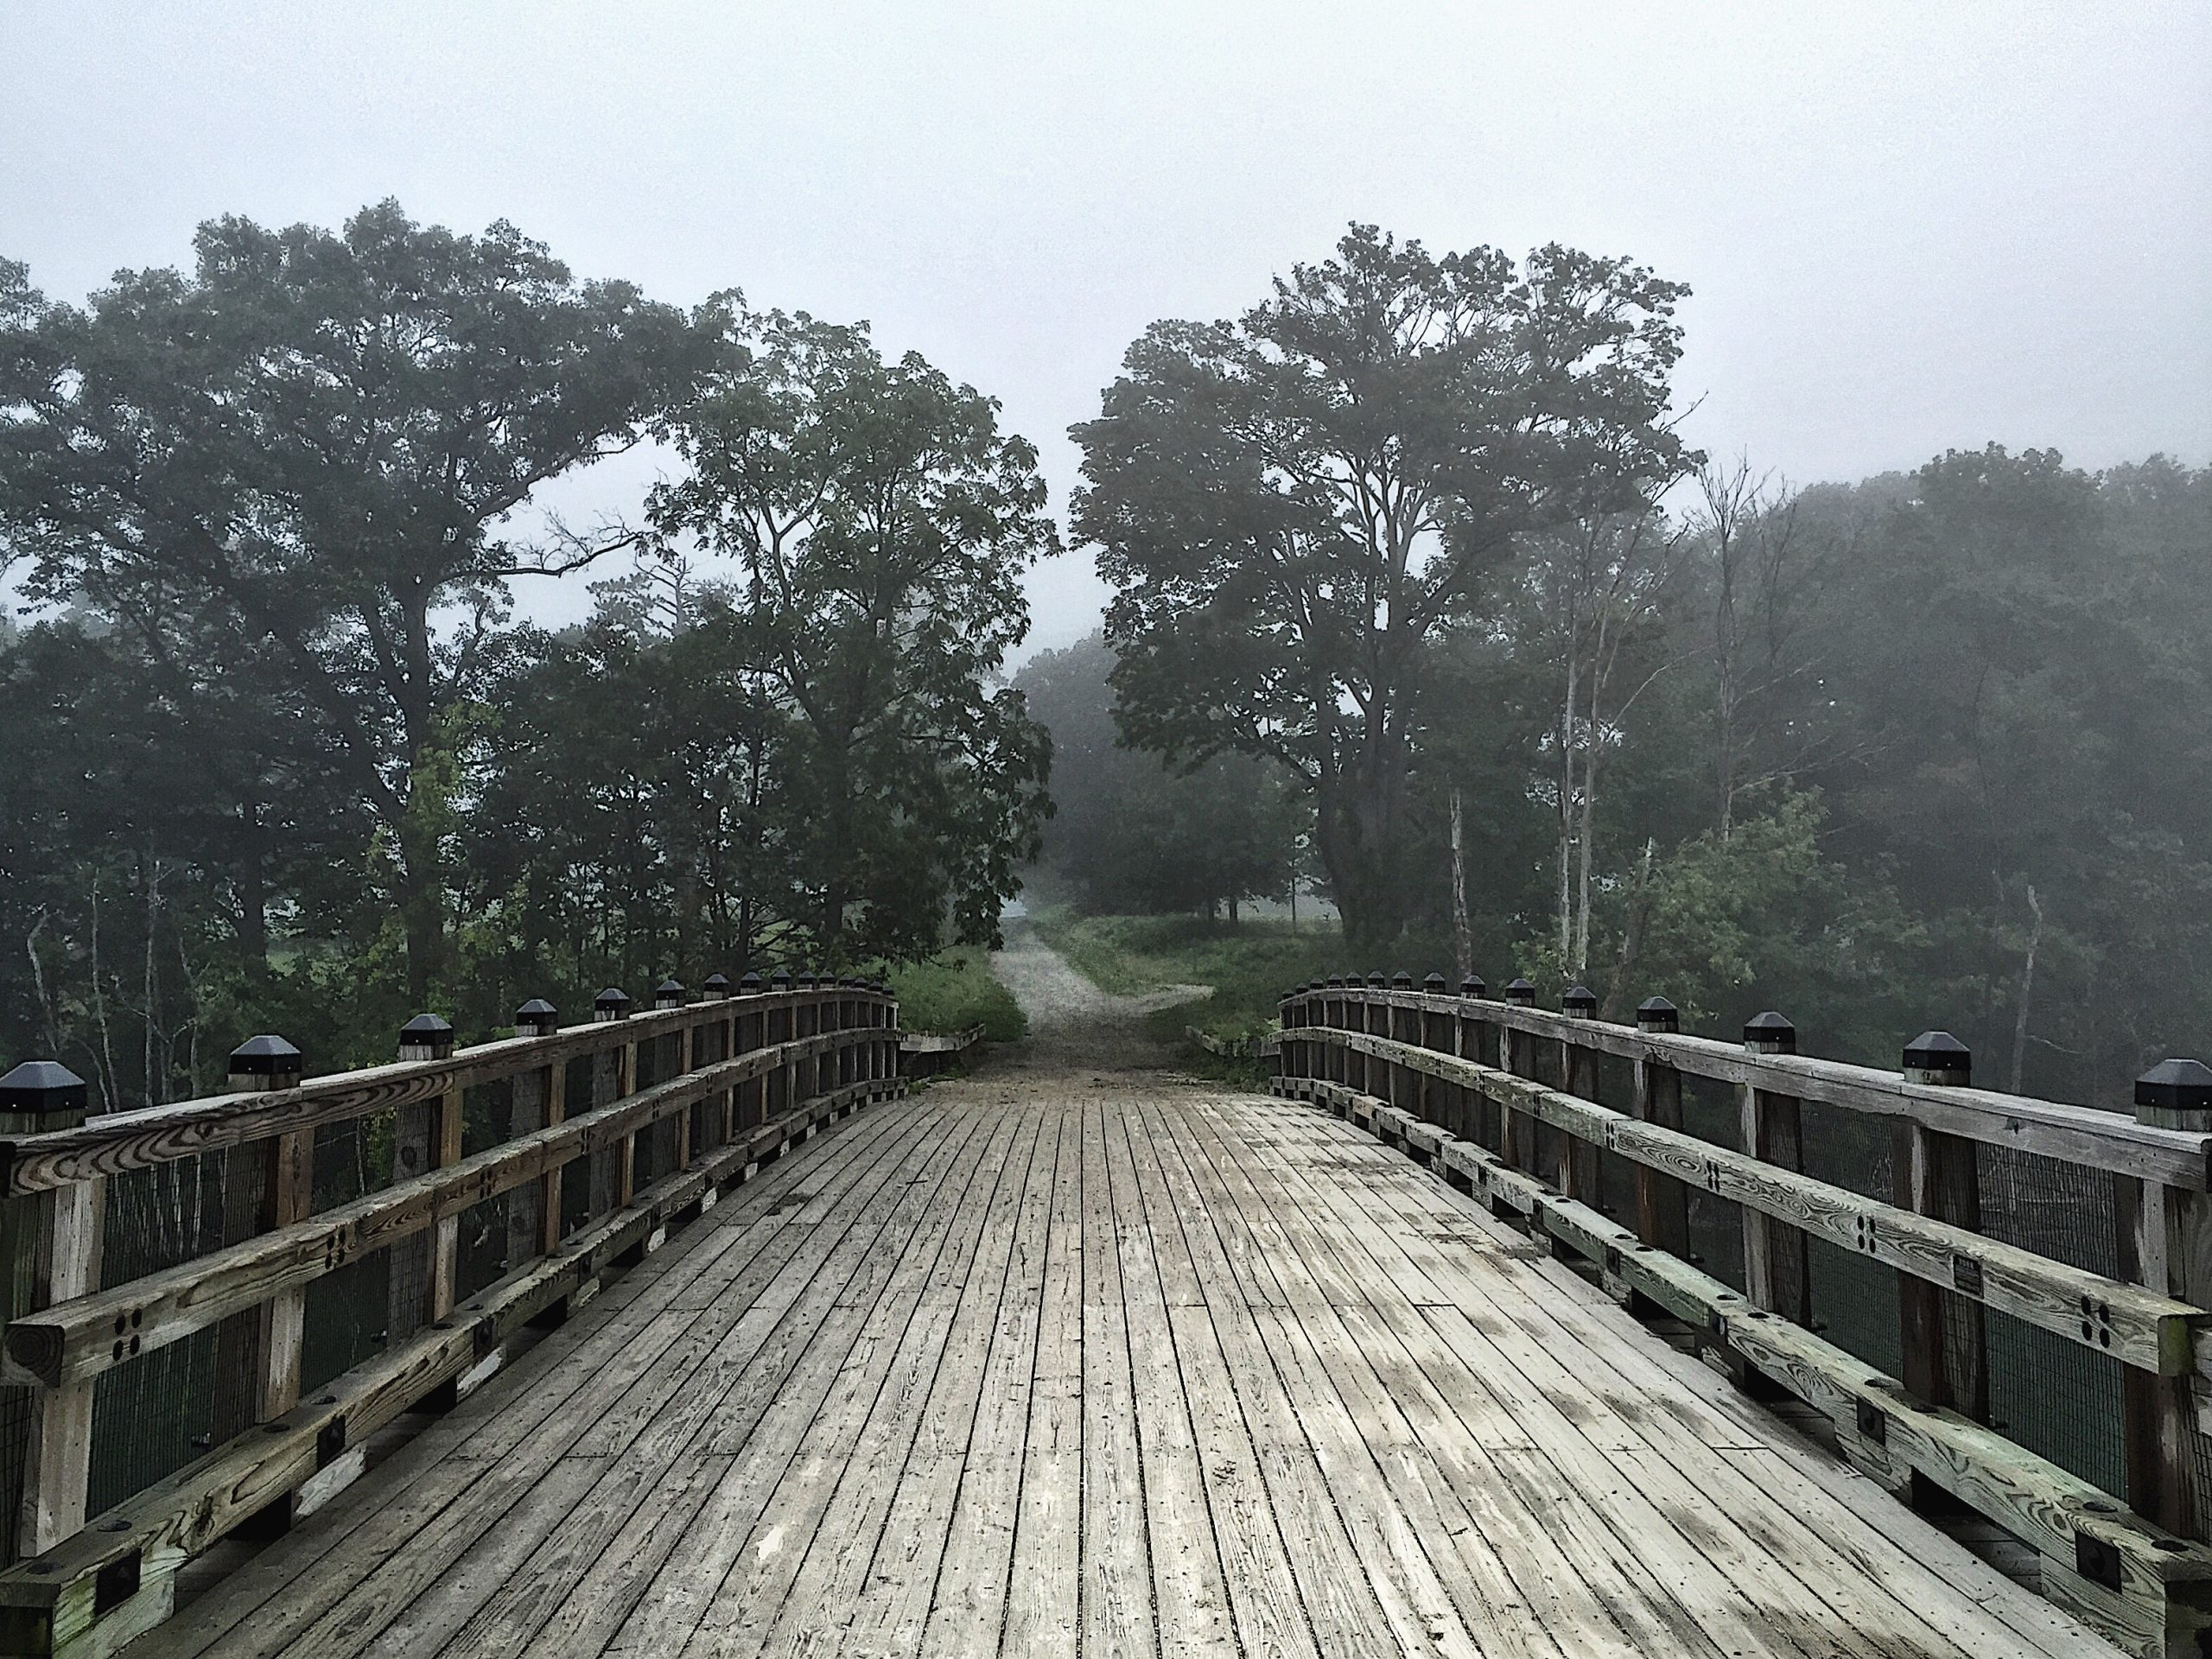 Photo of the bridge at World's End of a trail leading off into the distance. The weather is grey and foggy.